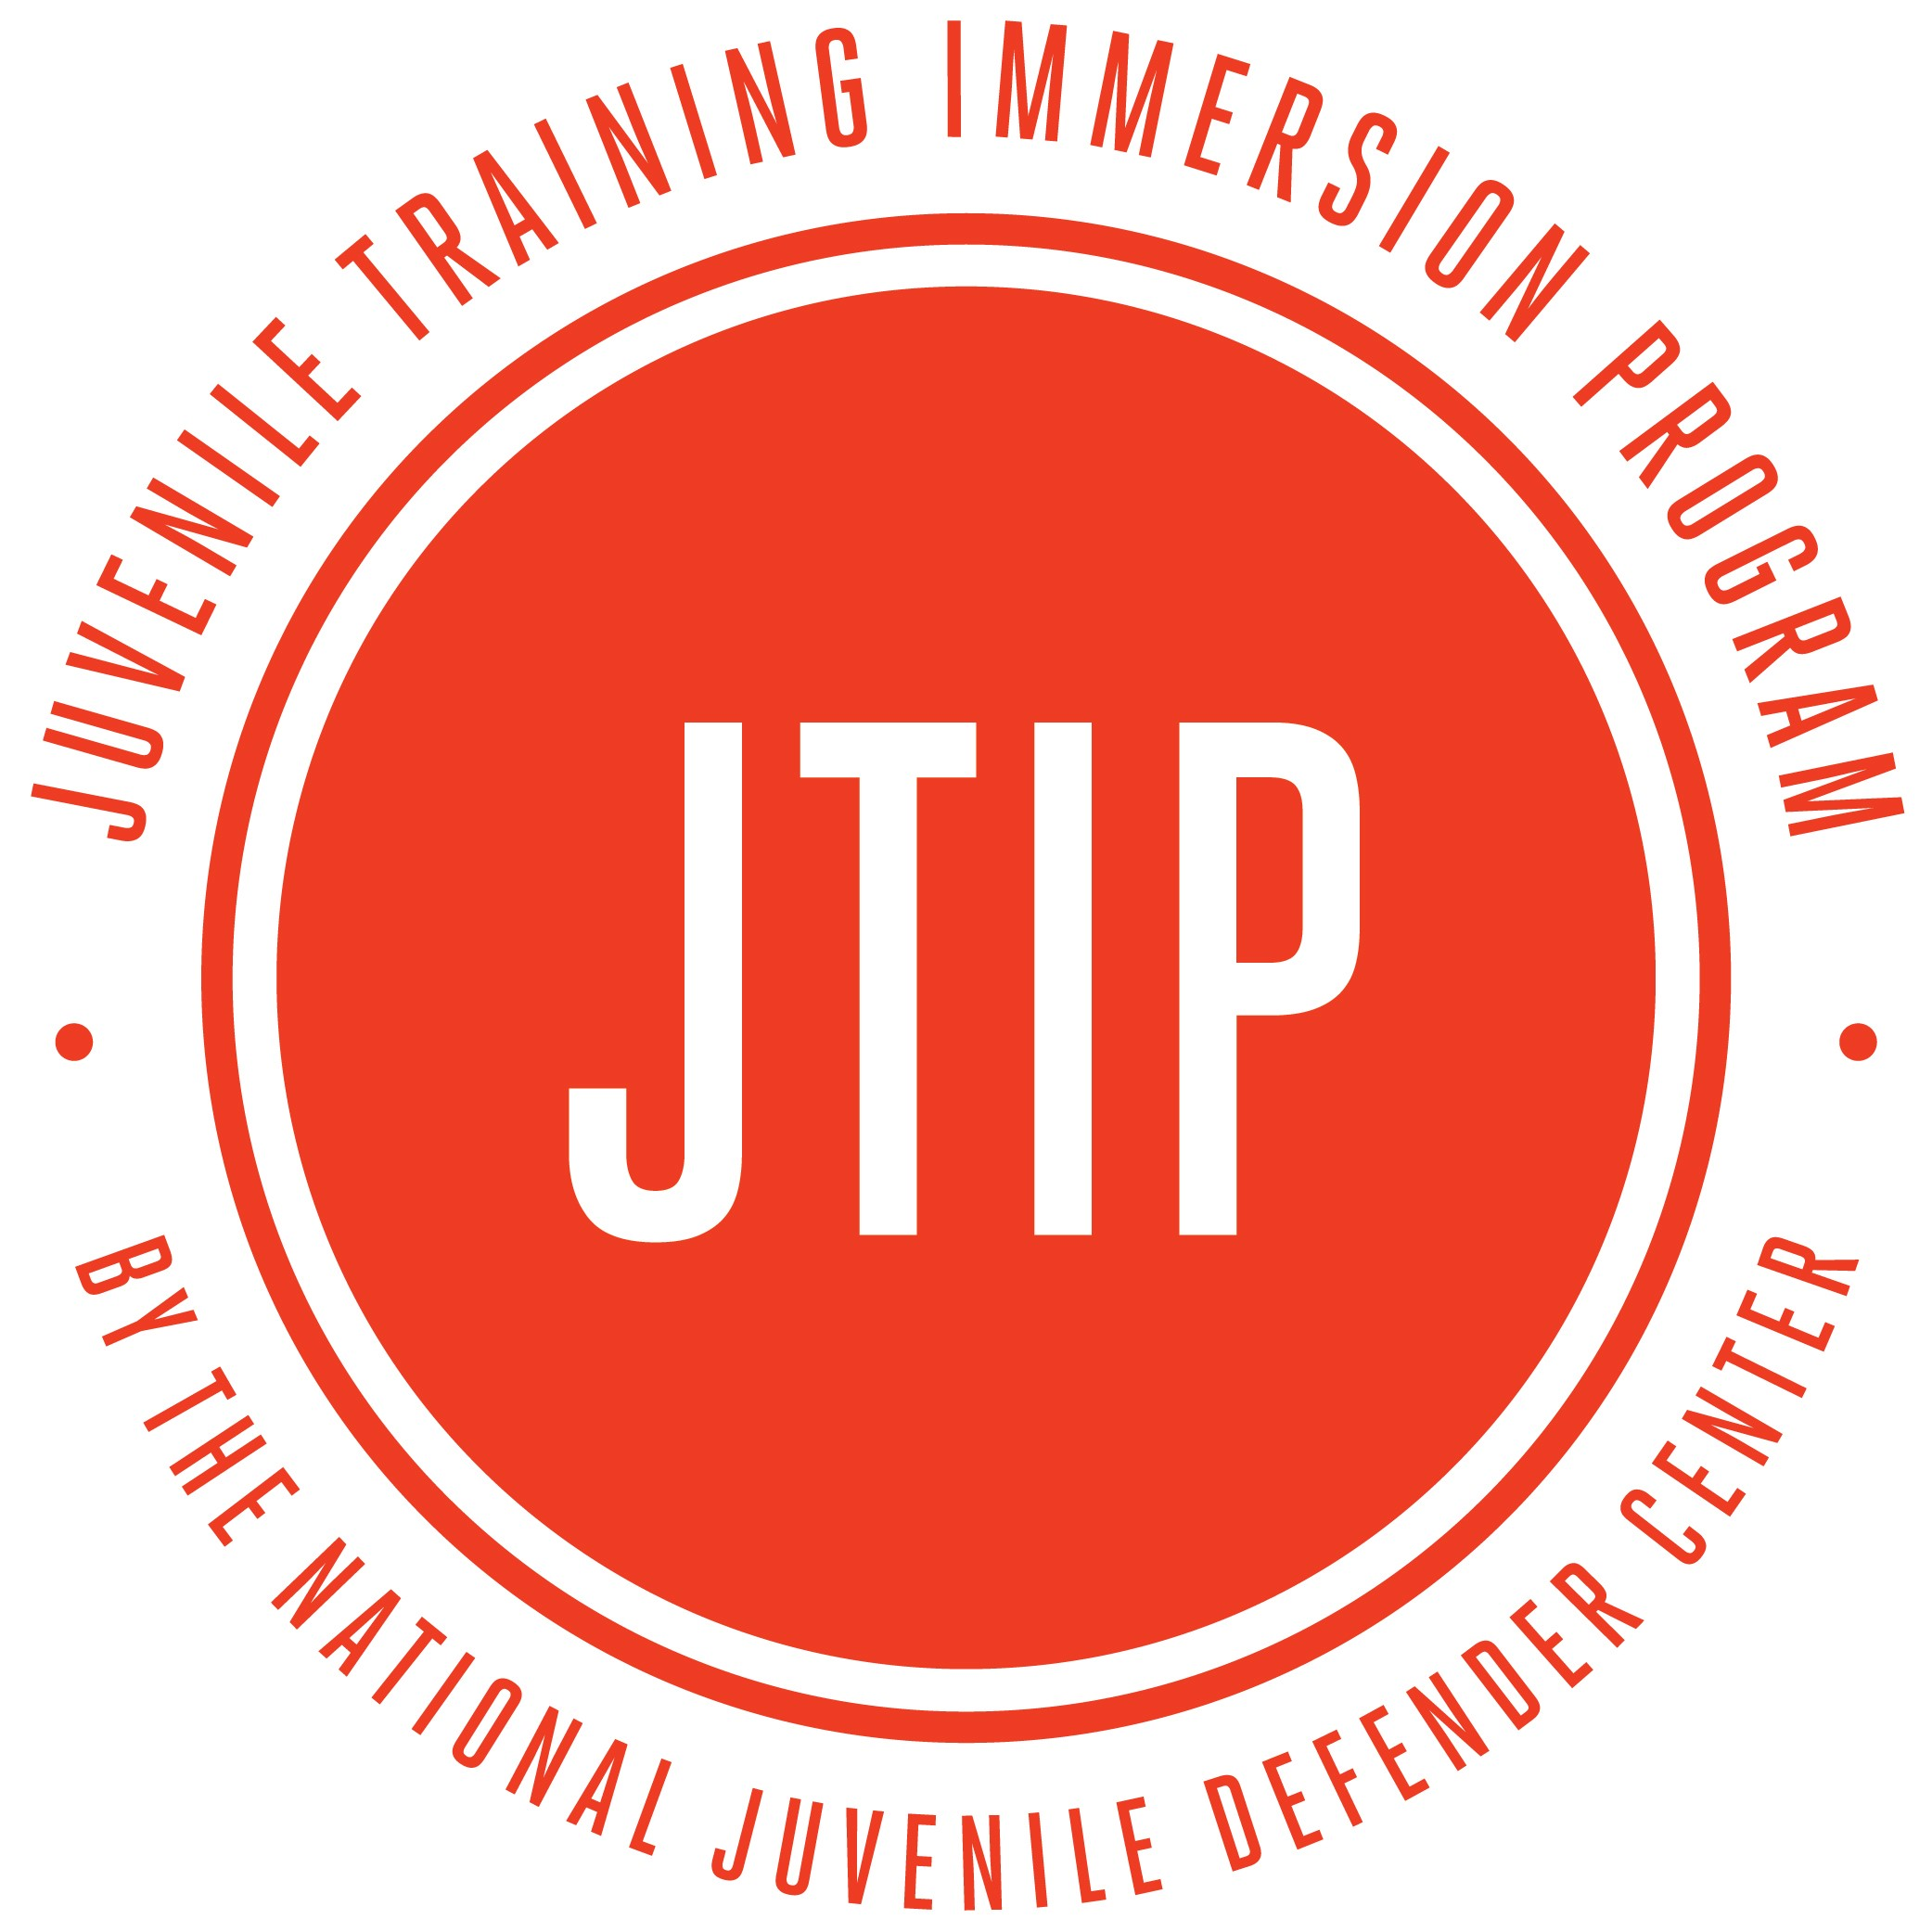 The Juvenile Training Immersion Program (FULL)